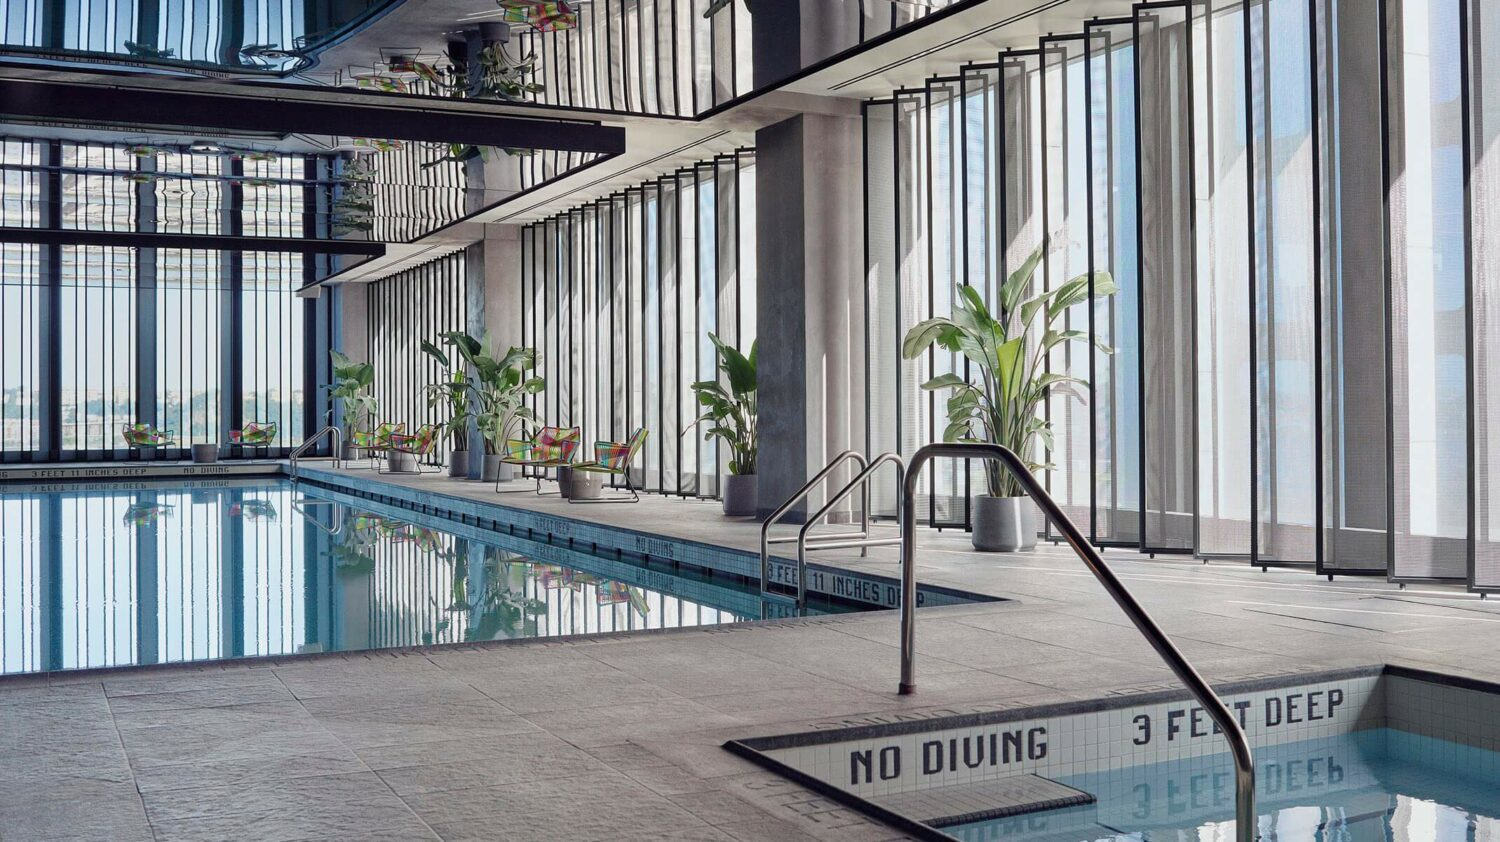 heated indoor pool-equinox hotel new york city